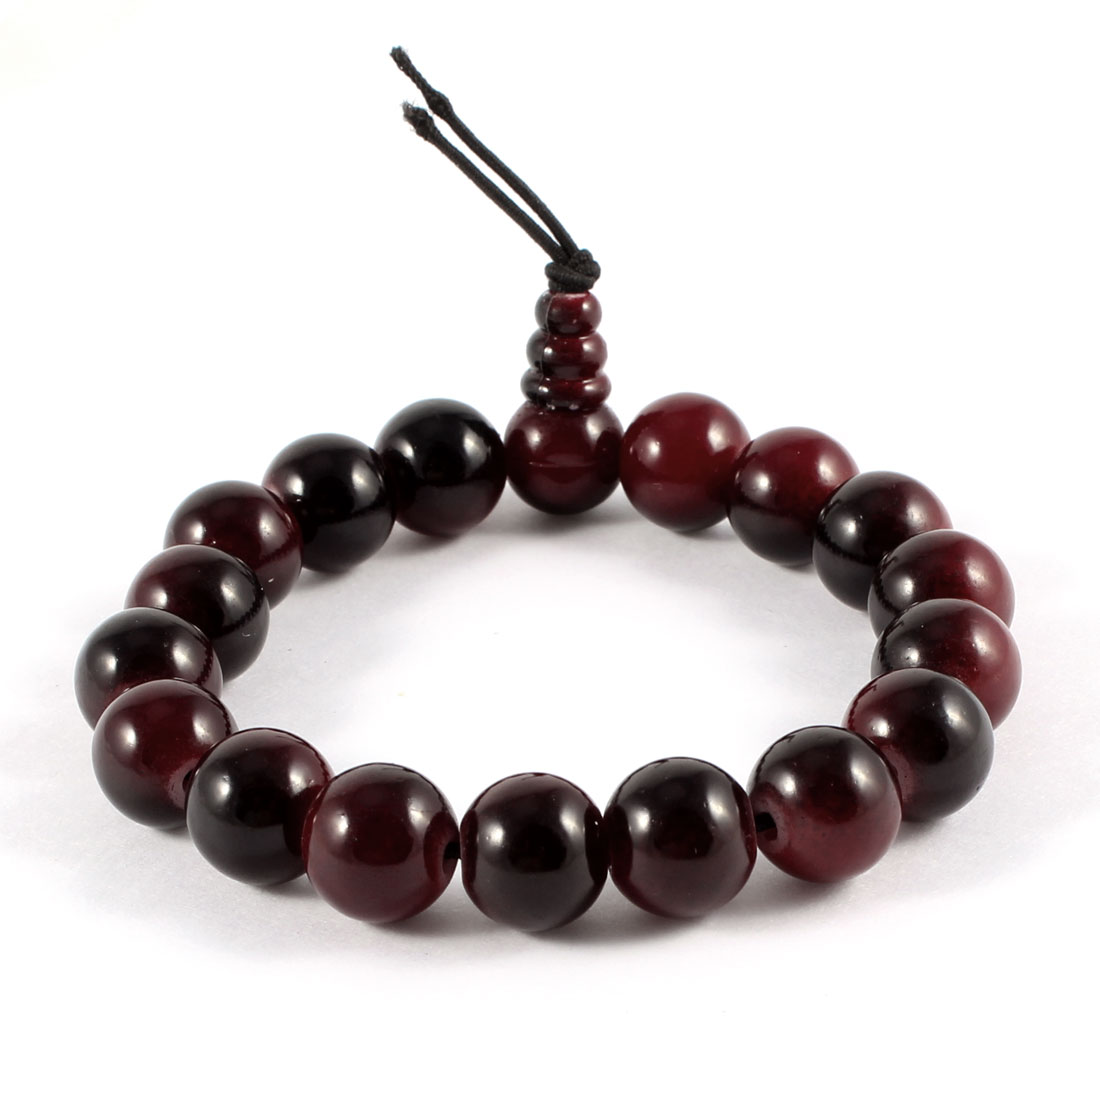 Plastic 15cm Girth Black Red Round Bead Linked Bracelet for Lady